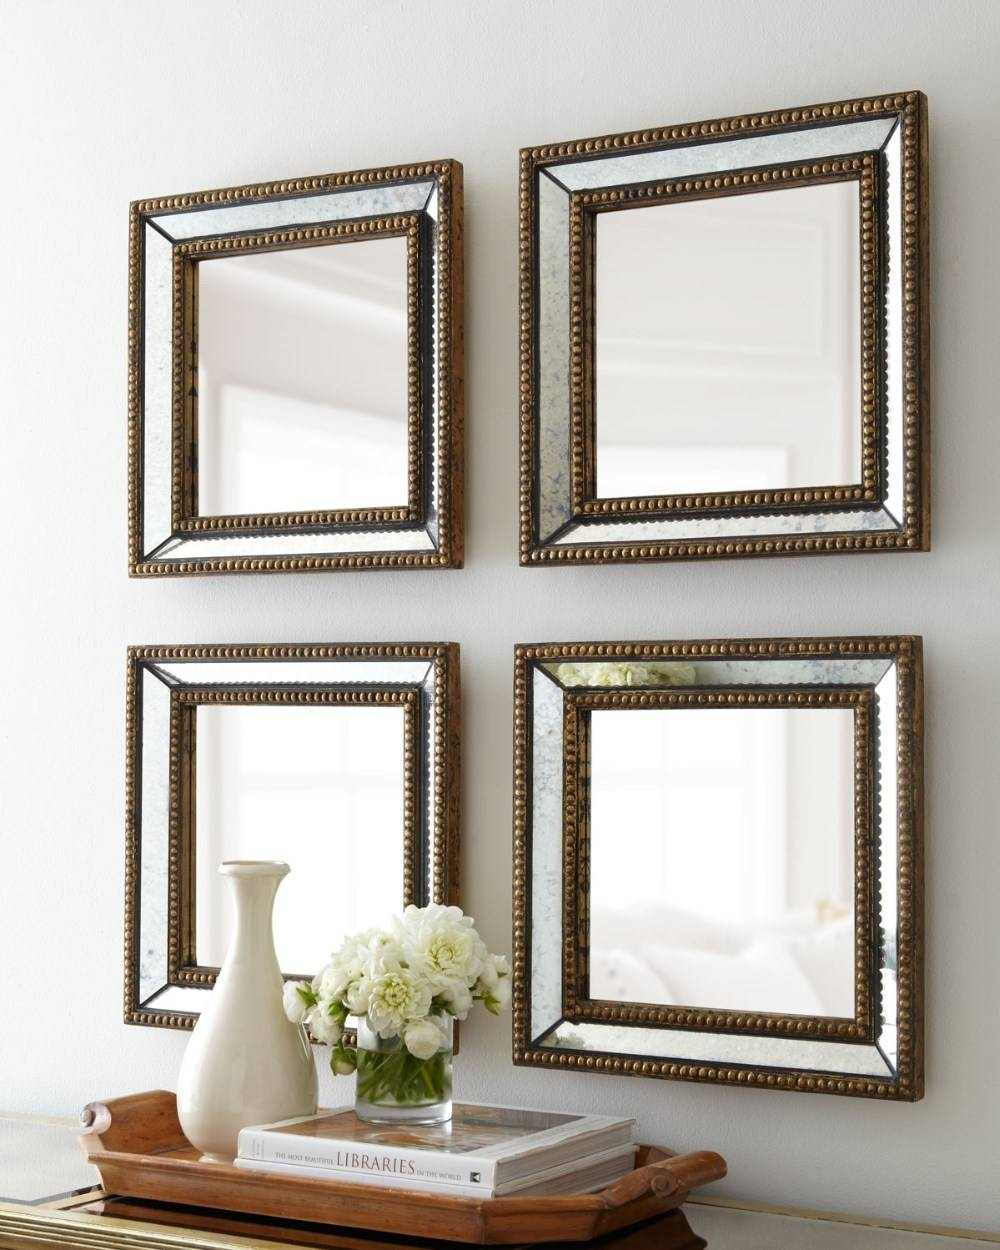 Alibaba Manufacturer Directory – Suppliers, Manufacturers Throughout Square Venetian Mirrors (View 4 of 25)